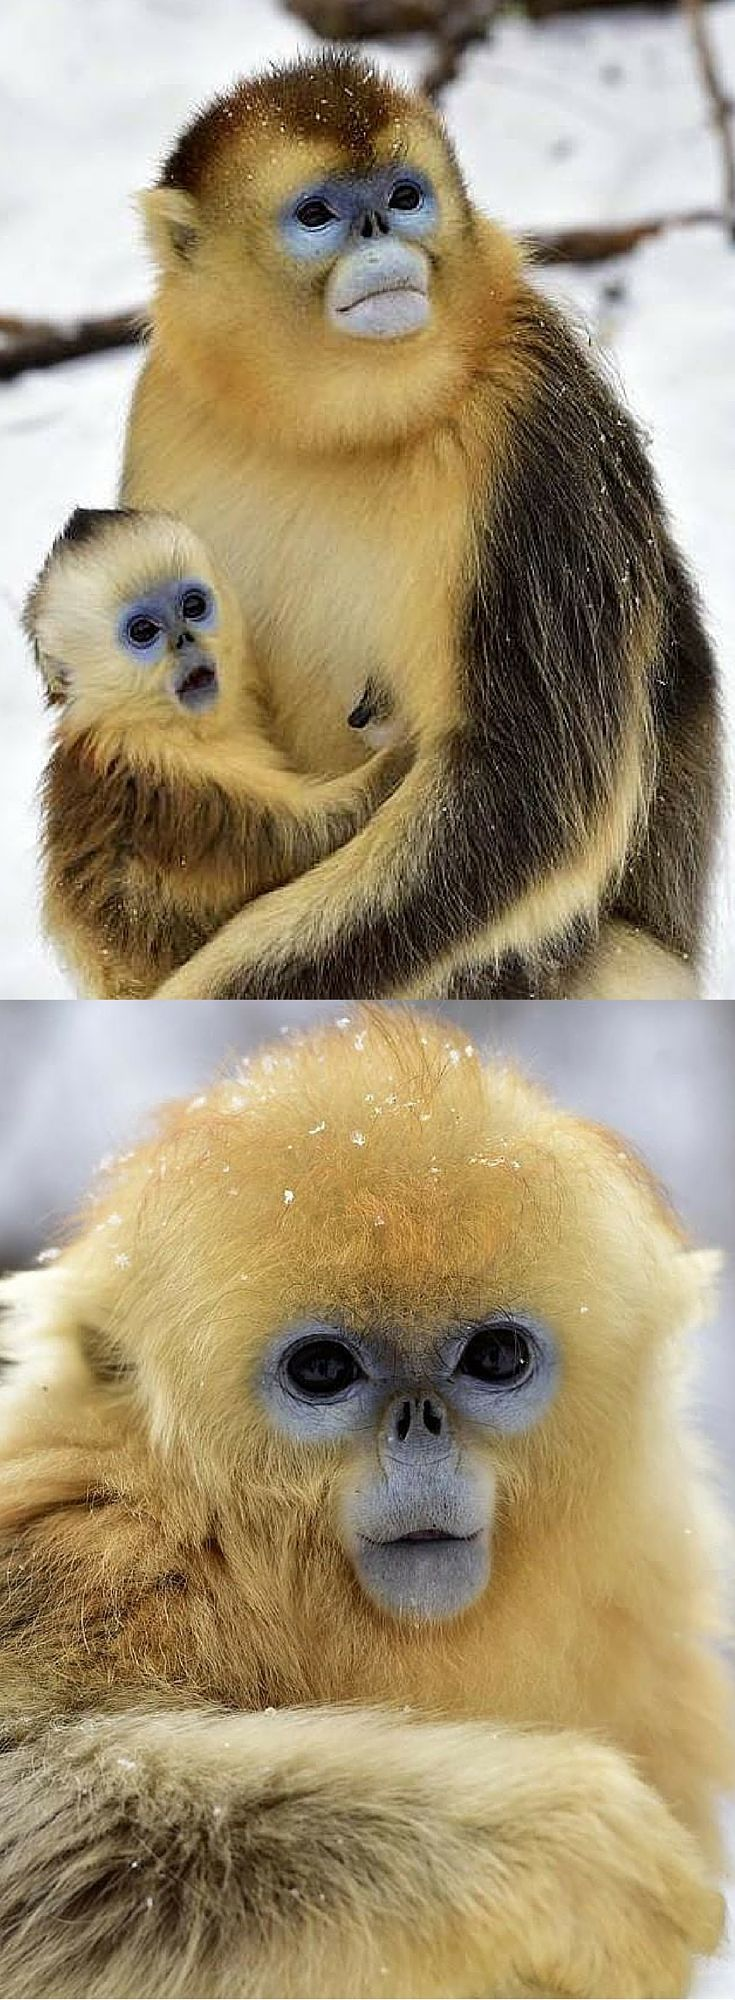 Beautiful golden snub-nosed monkeys in China's snowy Shennongija Nature Reserve